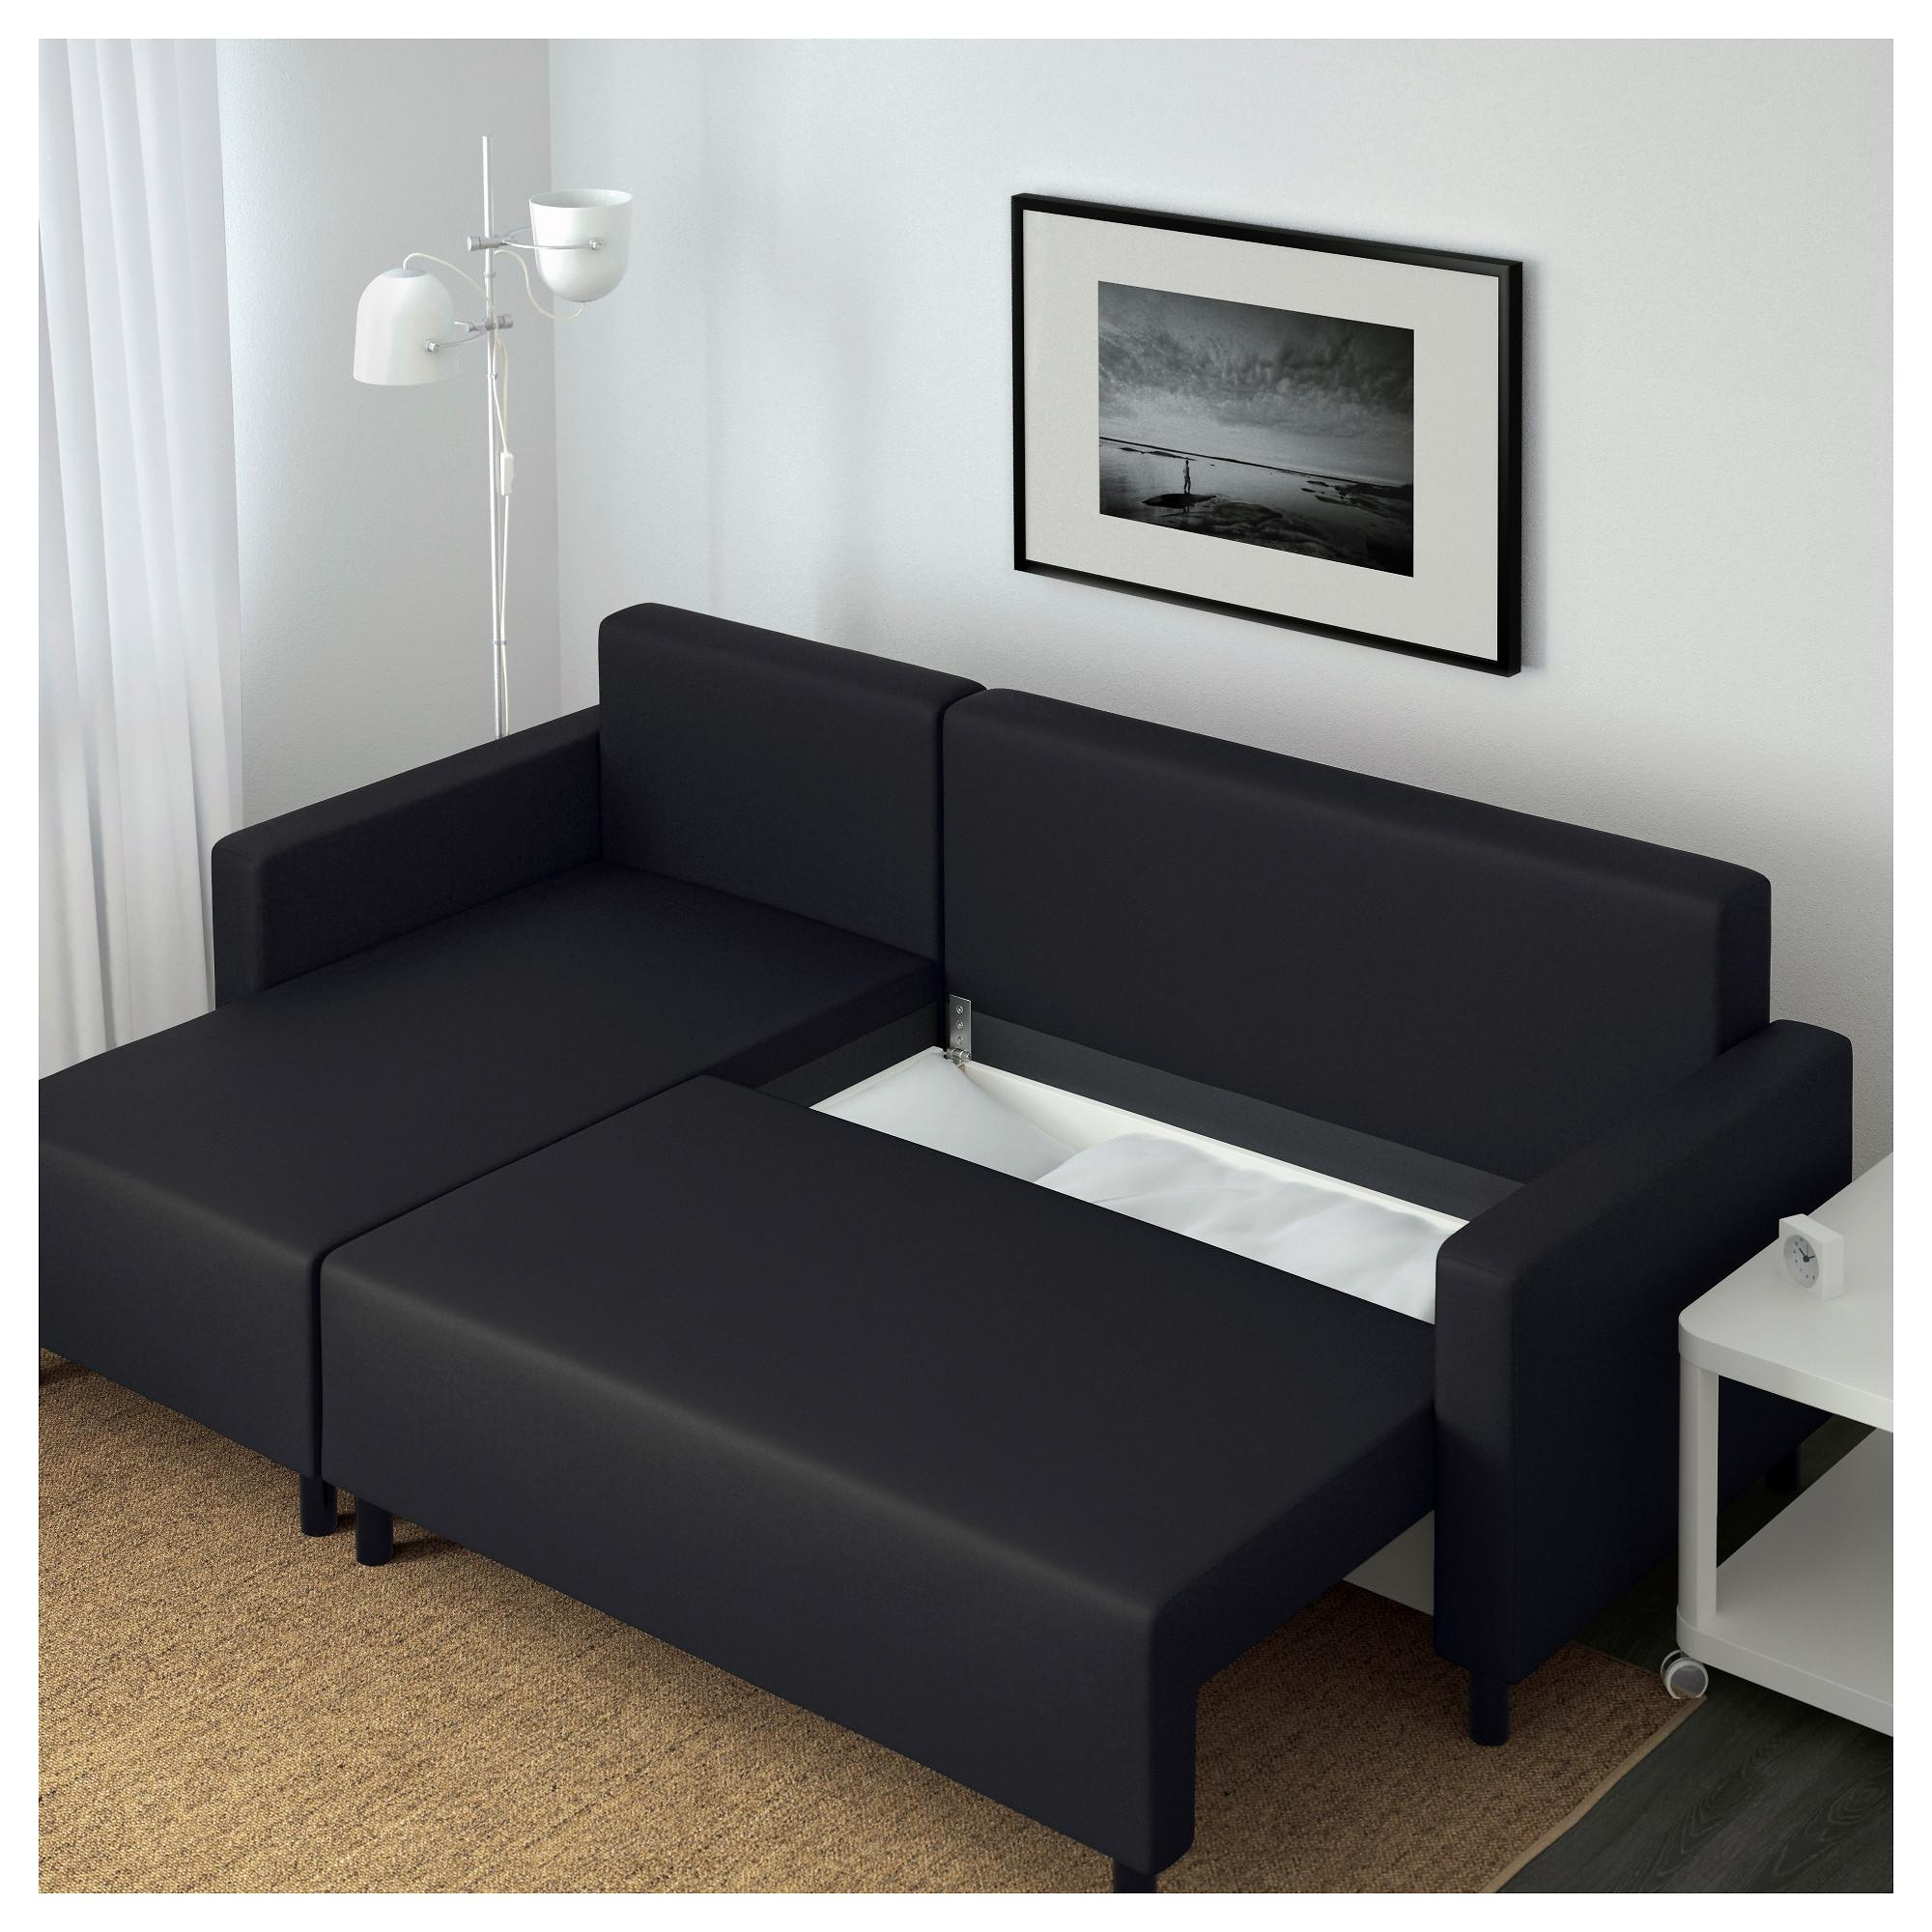 Lugnvik Sofa Bed With Chaise Longue Granån Black – Ikea For Chaise Longue Sofa Beds (View 15 of 20)